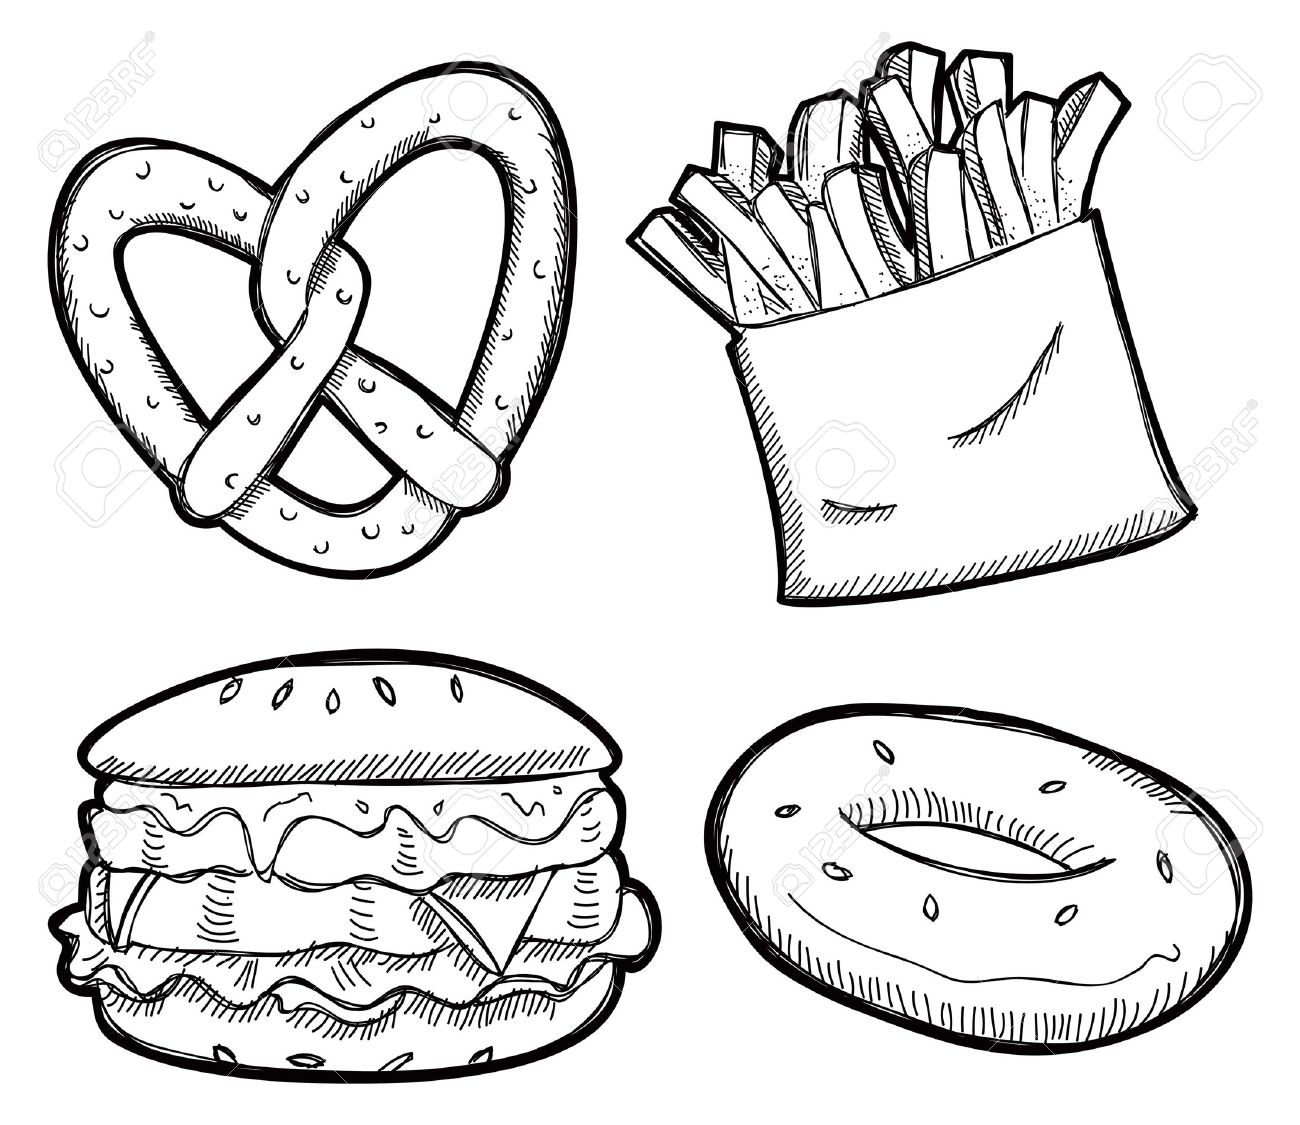 Download Snacks Black And White Snack Hd Image Clipart PNG.